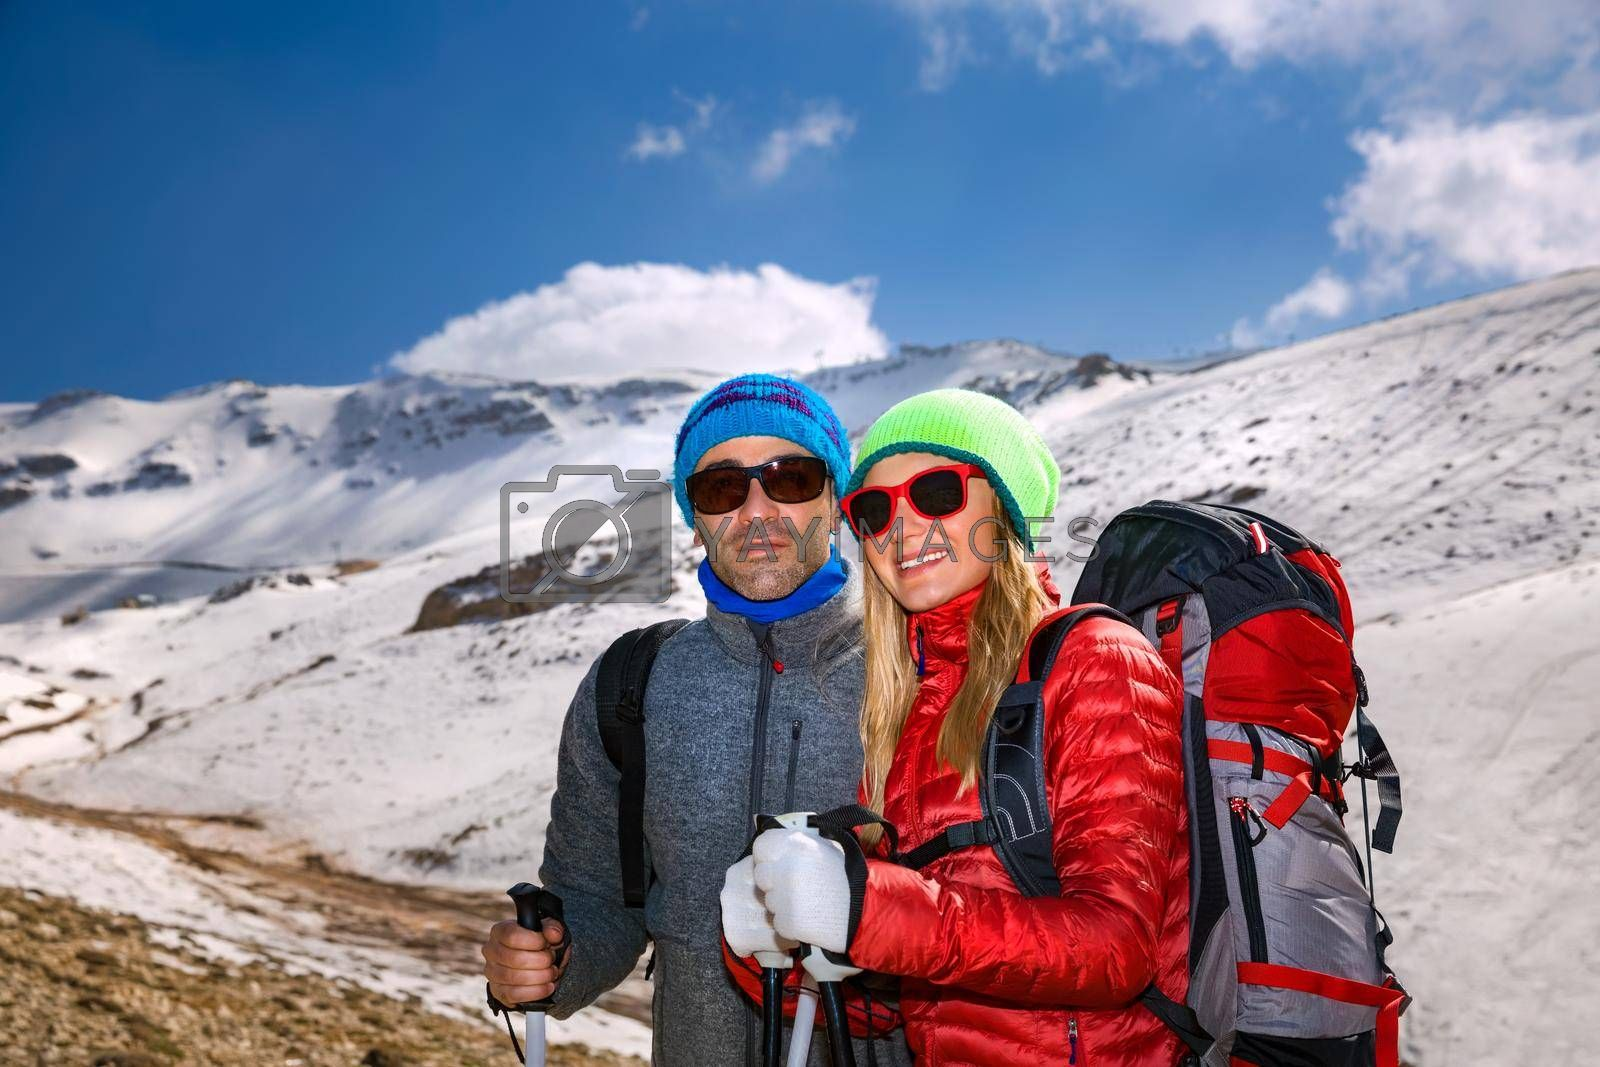 Portrait of a Nice Couple Climbing the Mountain with Trekking Poles. Enjoying Amazing View. Happy Active Winter Holidays.